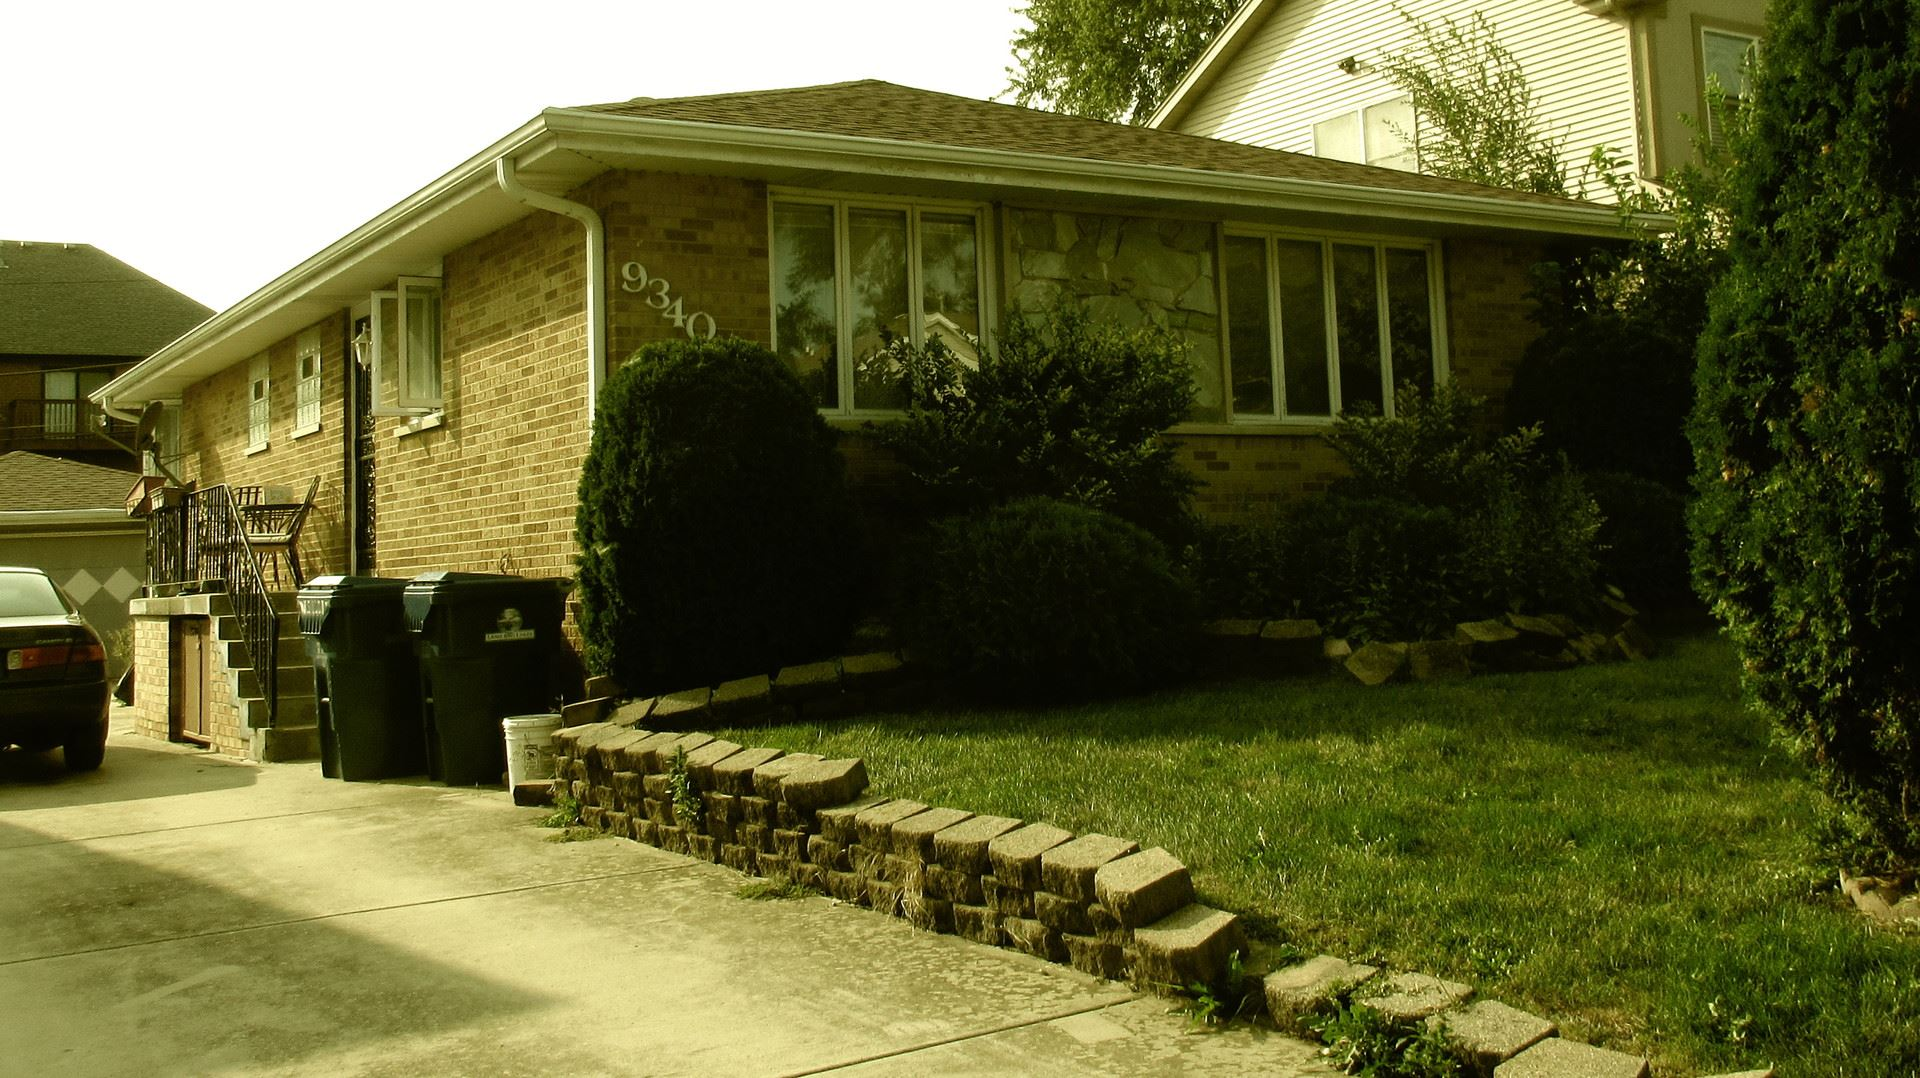 Photo for 9340 S 81st Court, Hickory Hills, IL 60457 (MLS # 10860432)